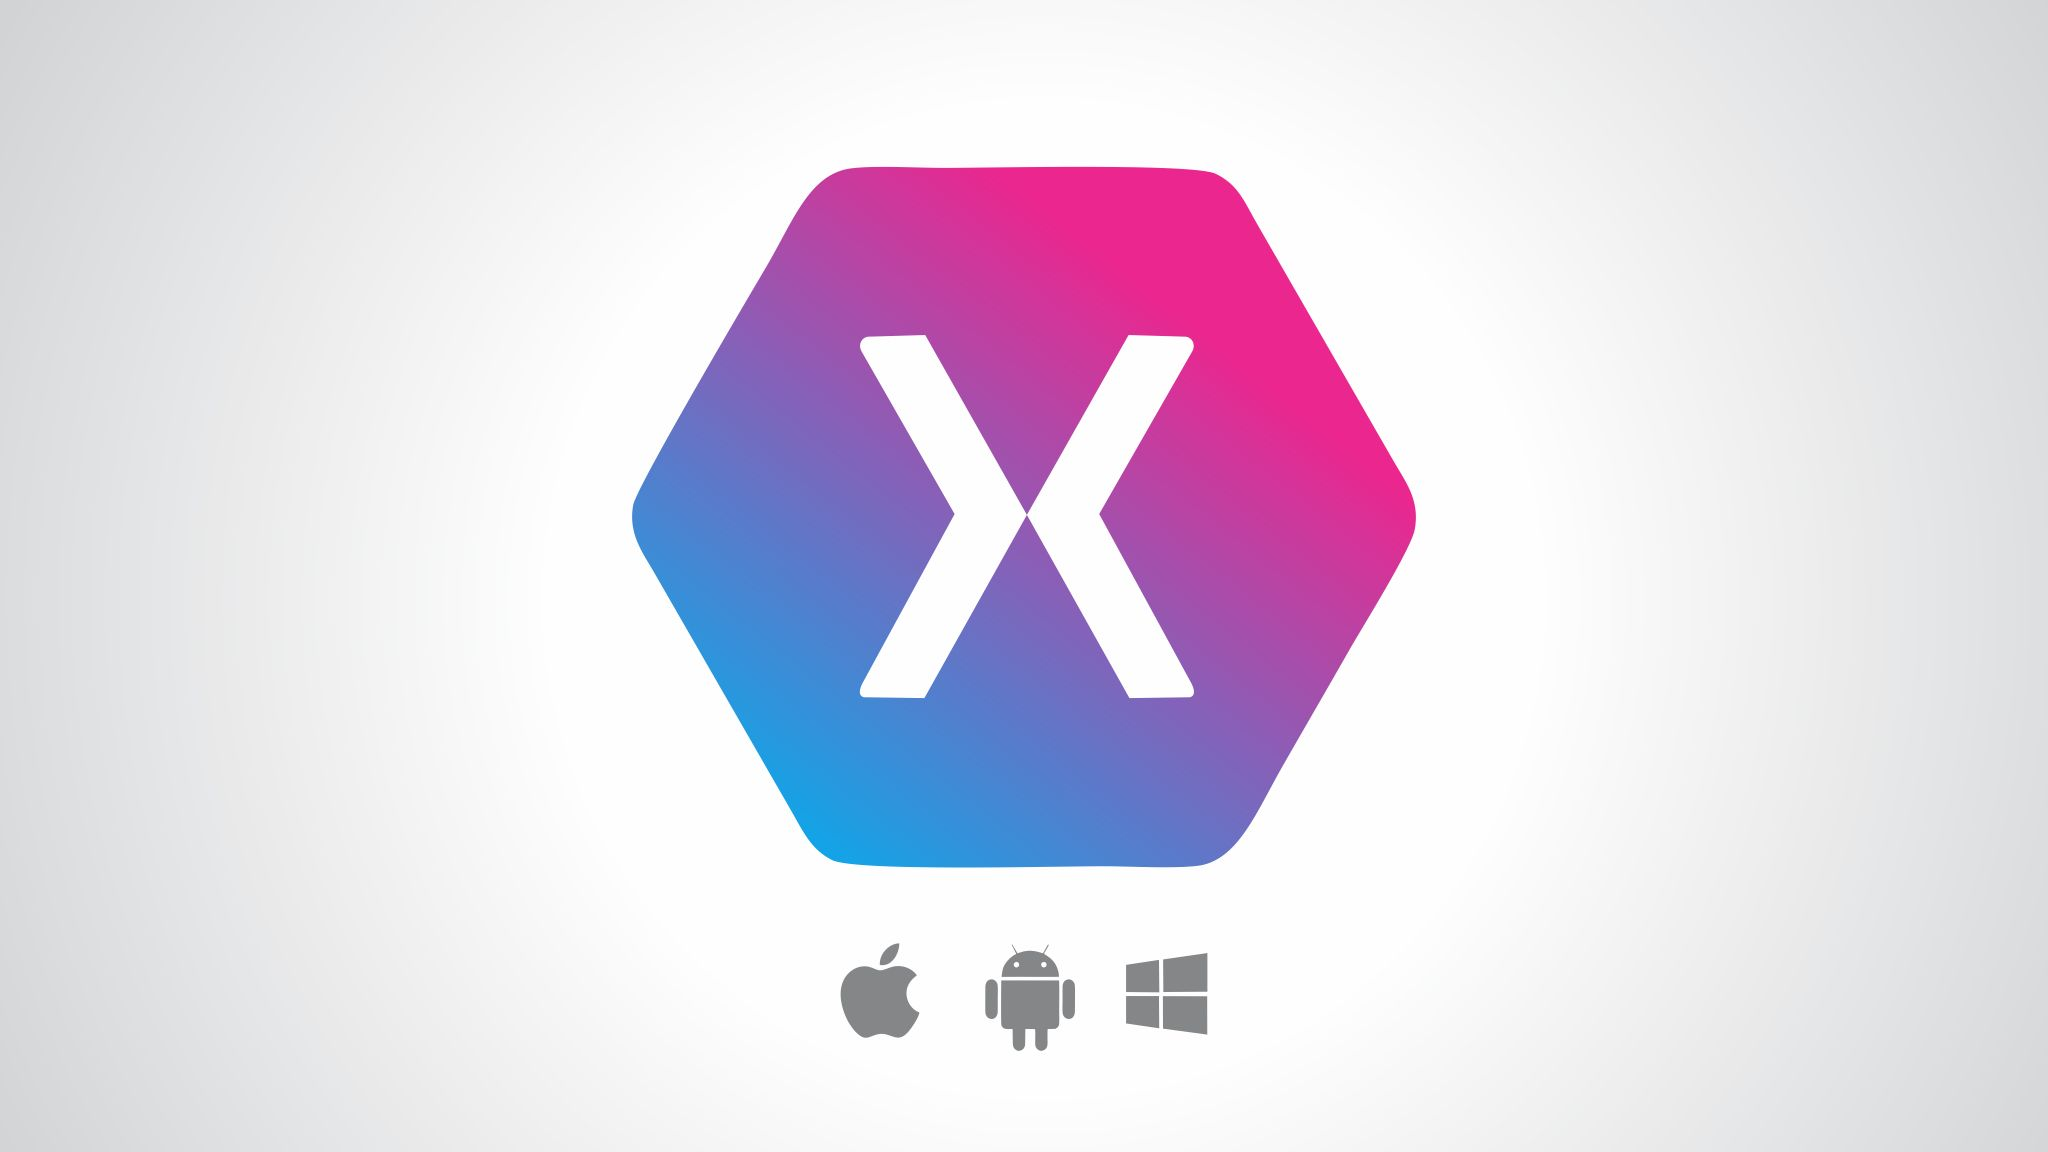 Xamarin Forms: Build Native Mobile Apps with C# | Code with Mosh